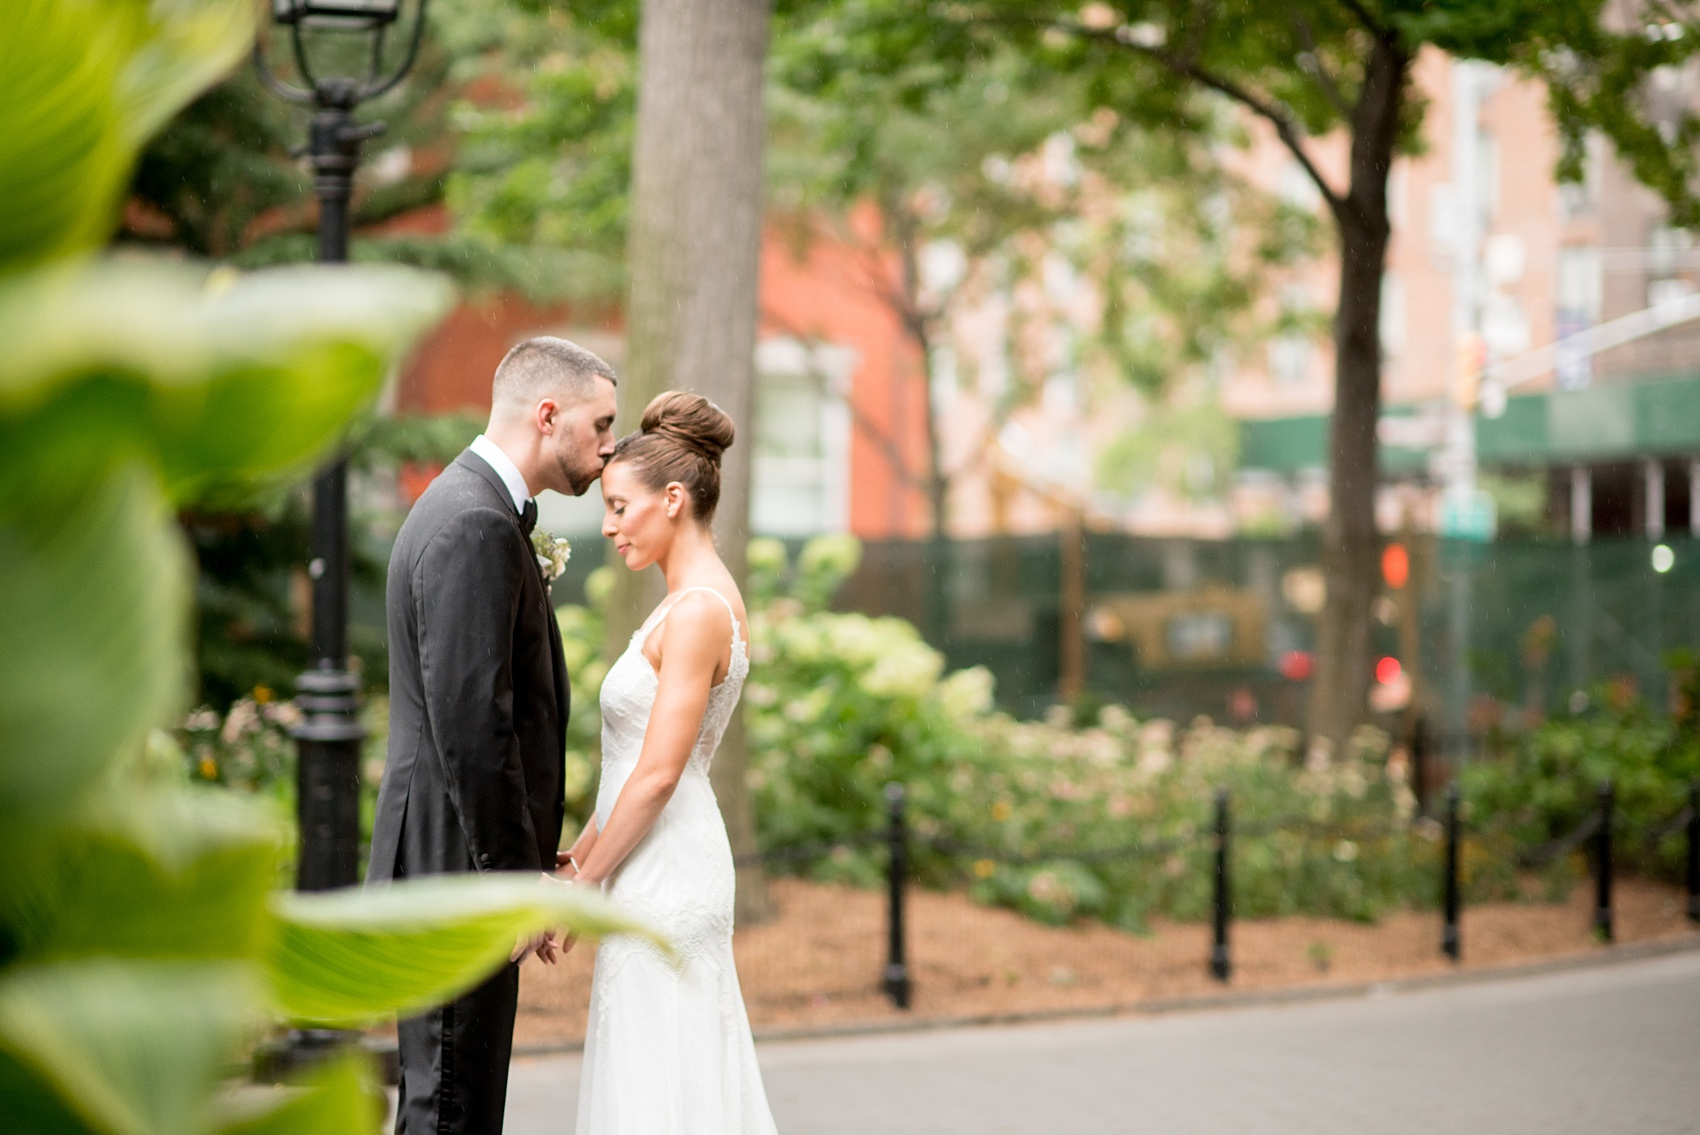 Mikkel Paige Photography captures a luxury wedding in NYC. First look photos in Washington Square Park with a classic bride and groom. Planning by Michelle Elaine Weddings.